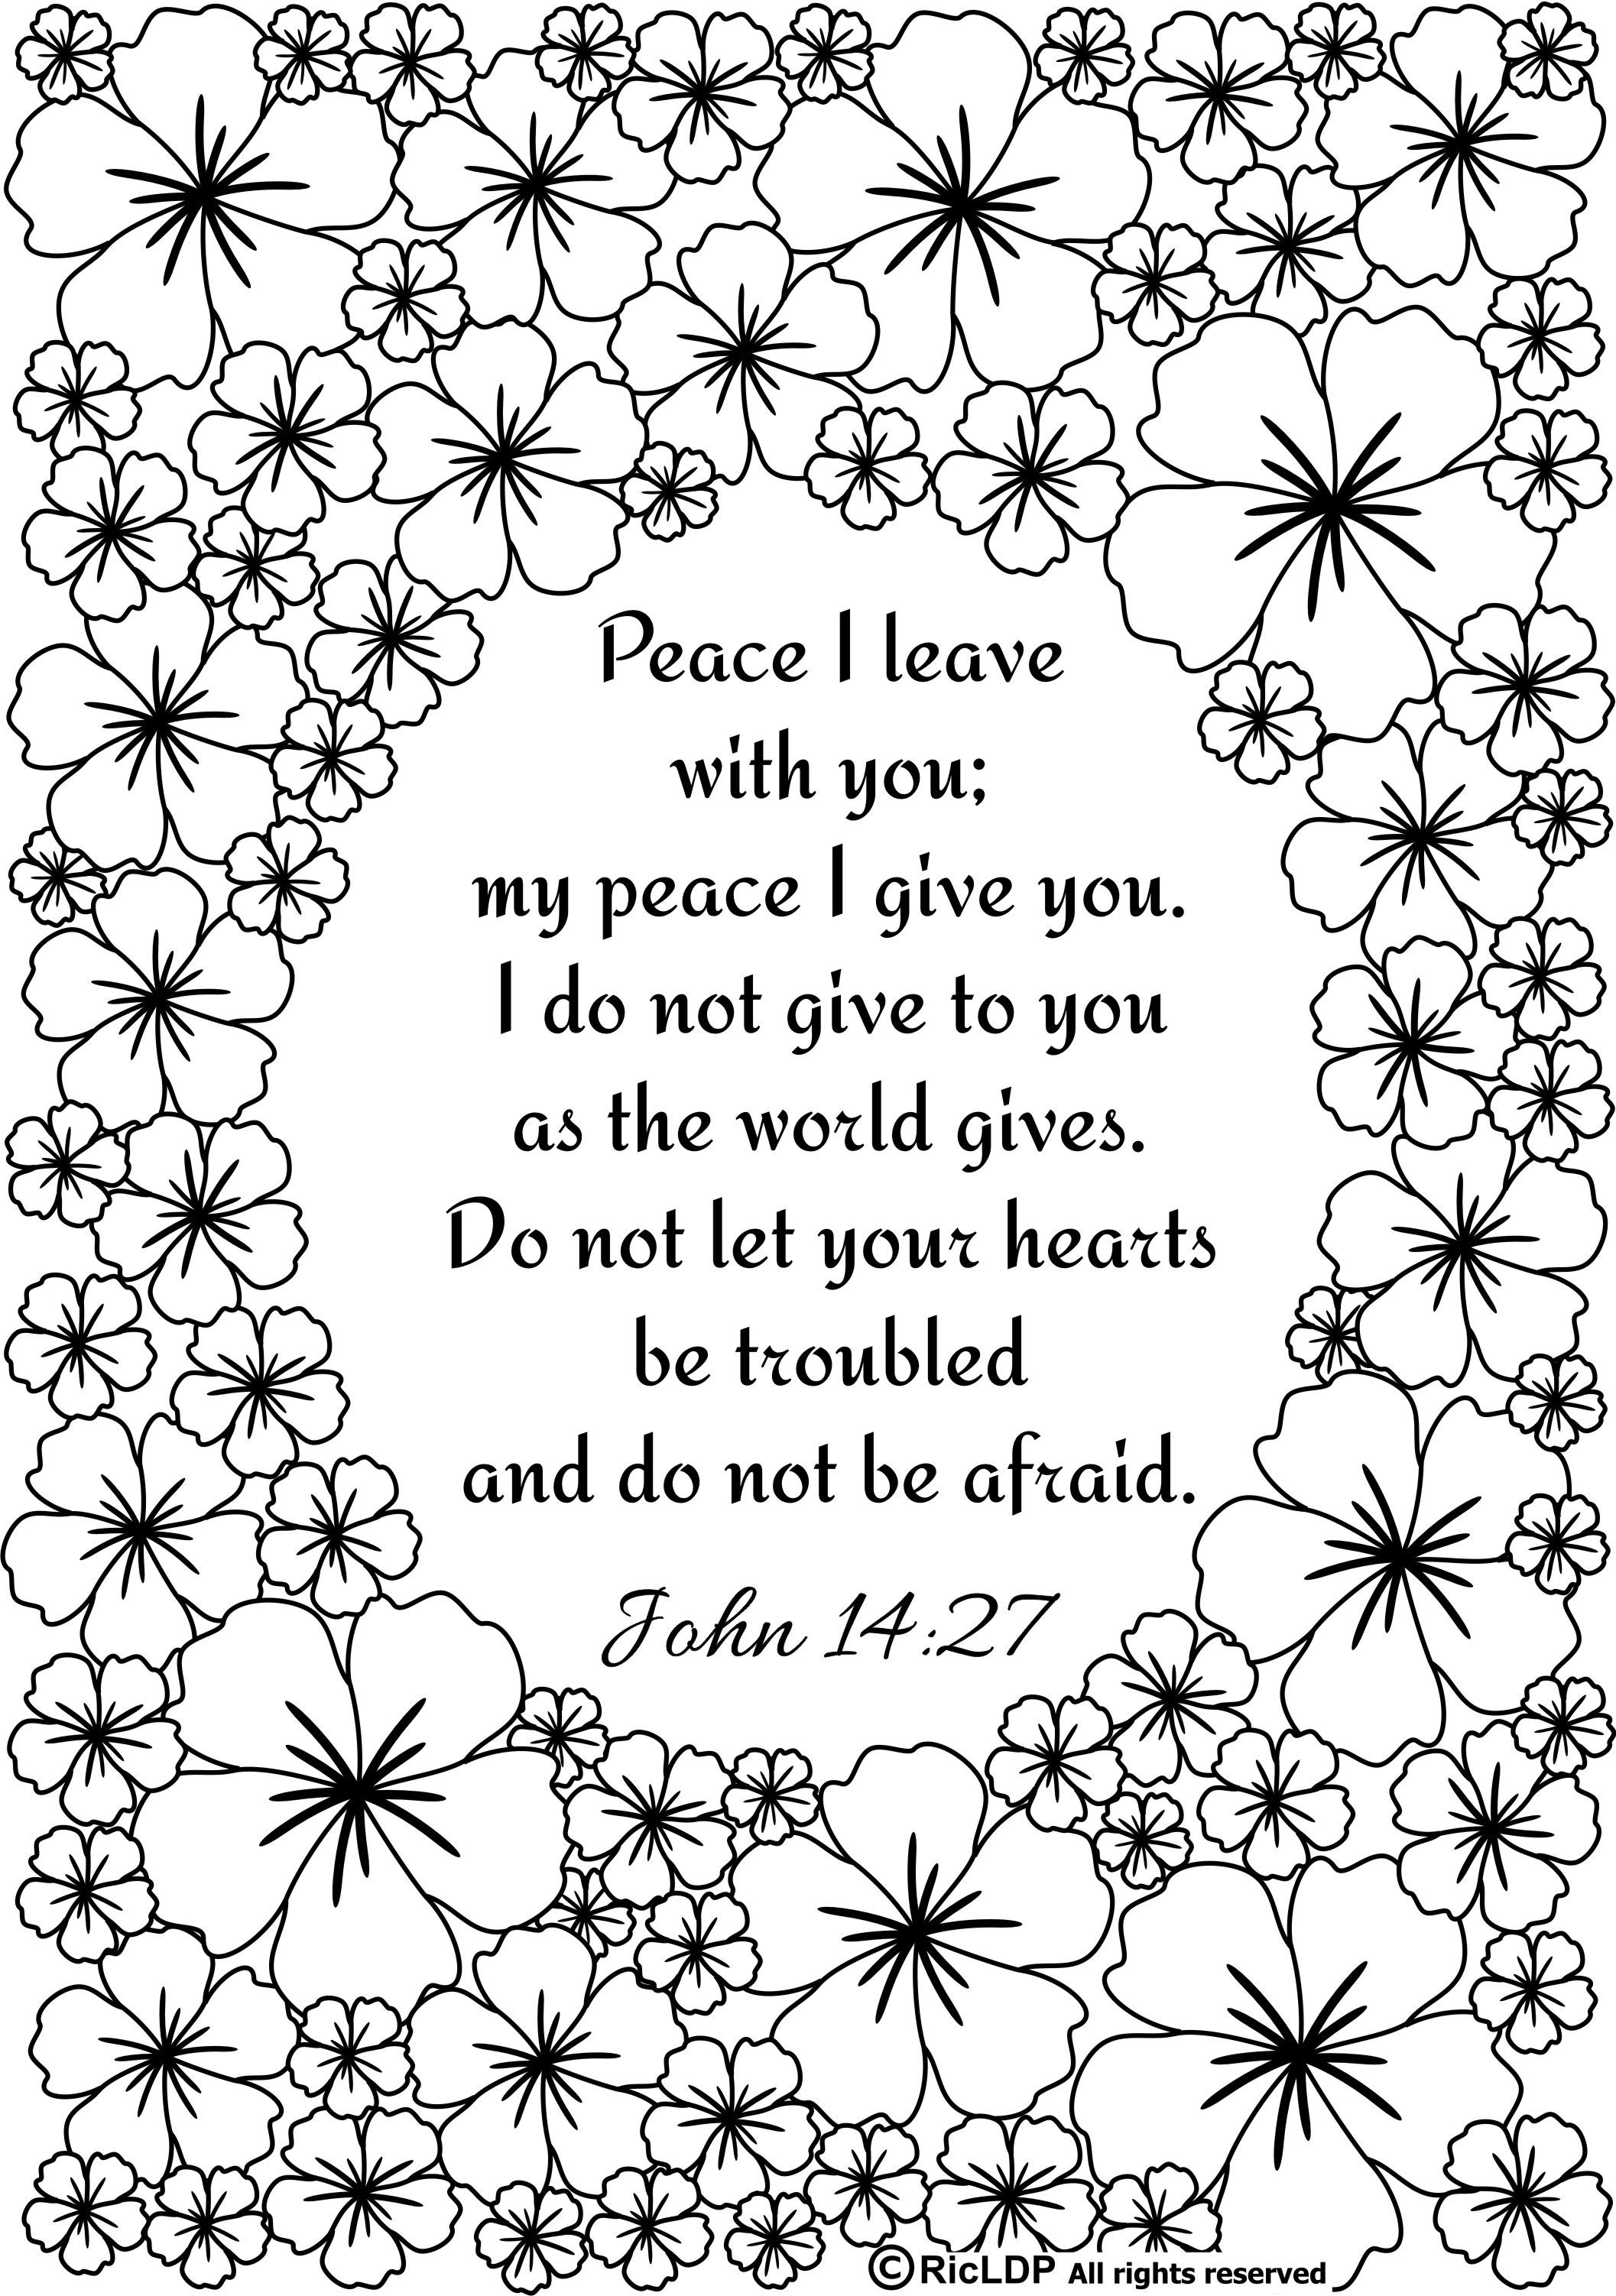 Ricldp Artworks (Ricldp)   Coloring Pages!!!   Bible Verse Coloring - Free Printable Bible Coloring Pages